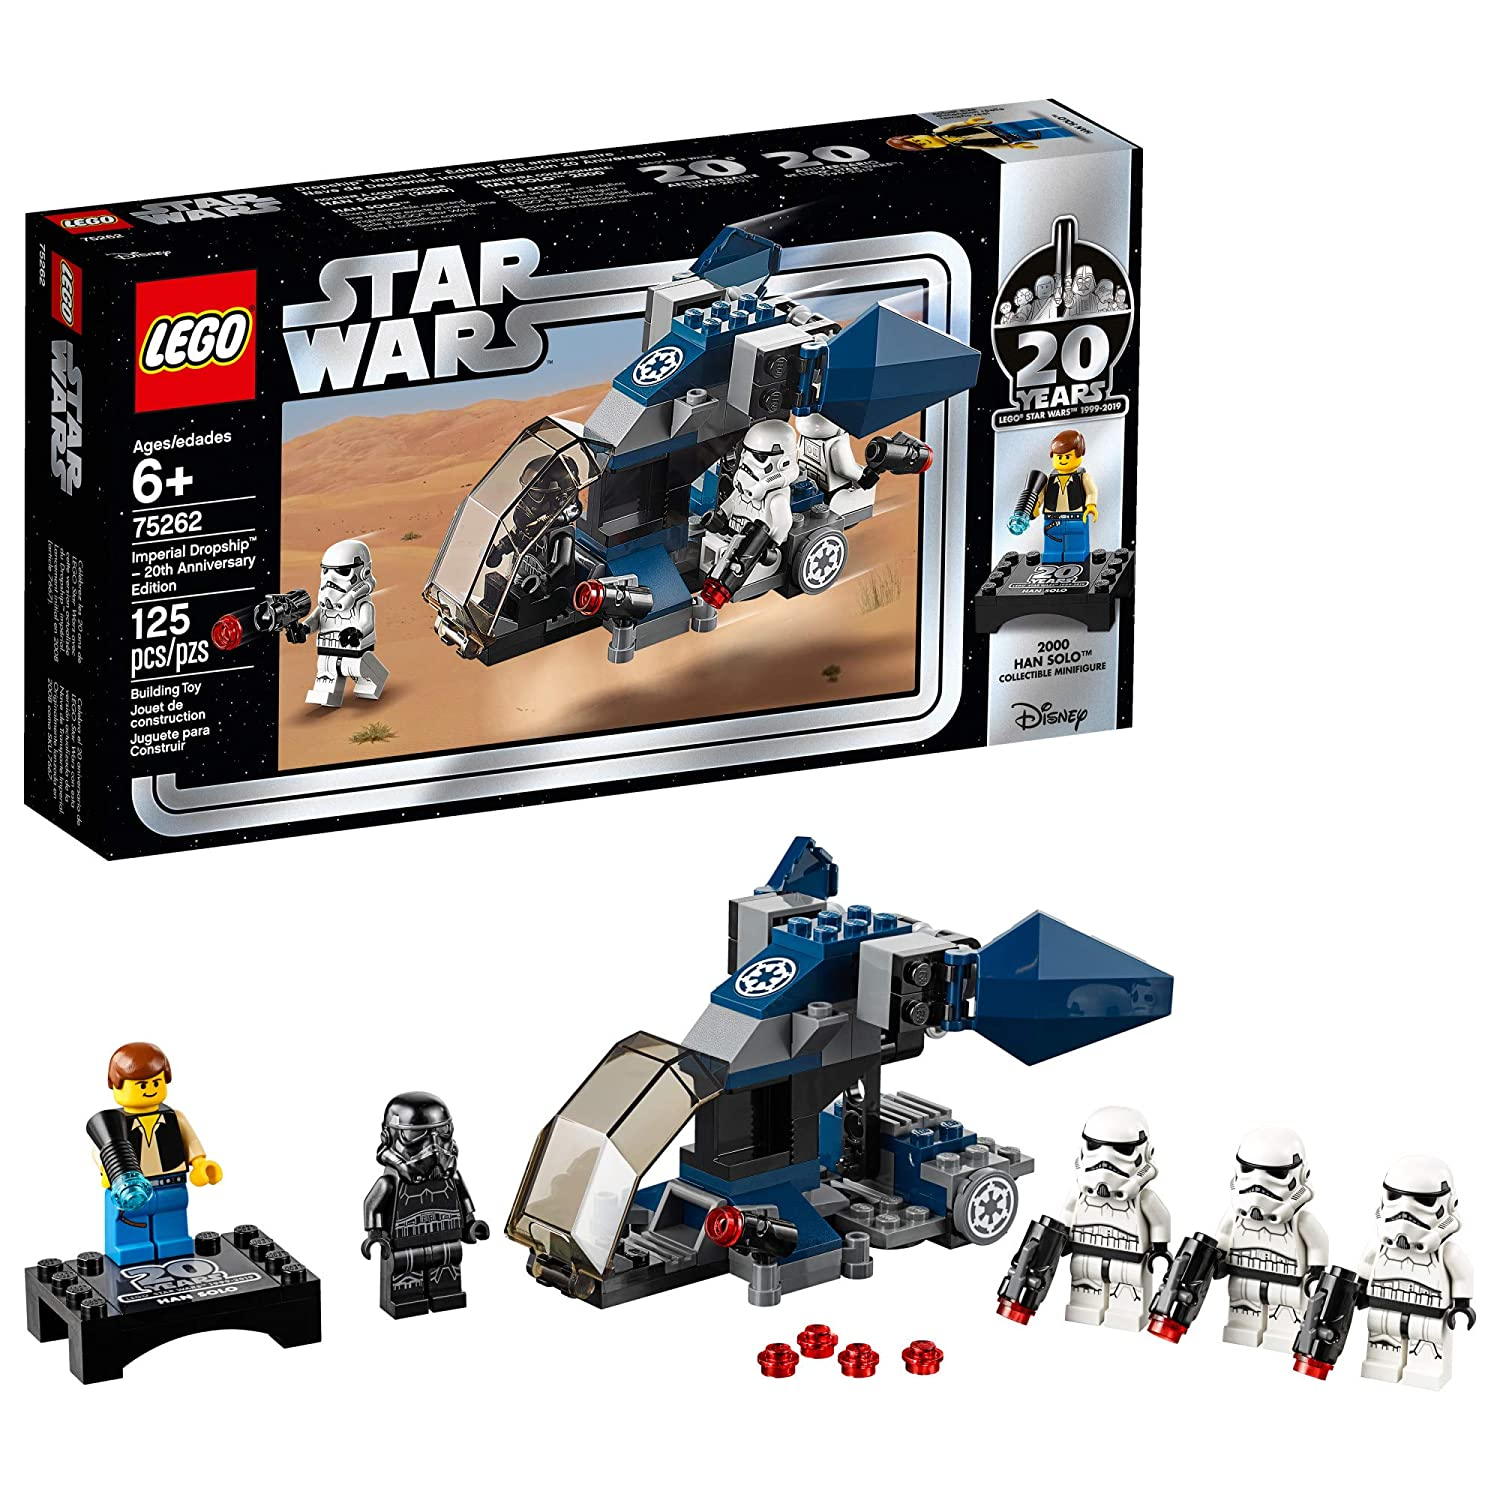 LEGO Star Wars Imperial Dropship – 20th Anniversary Edition 75262 Building  Kit, New 2019 (125 Pieces)